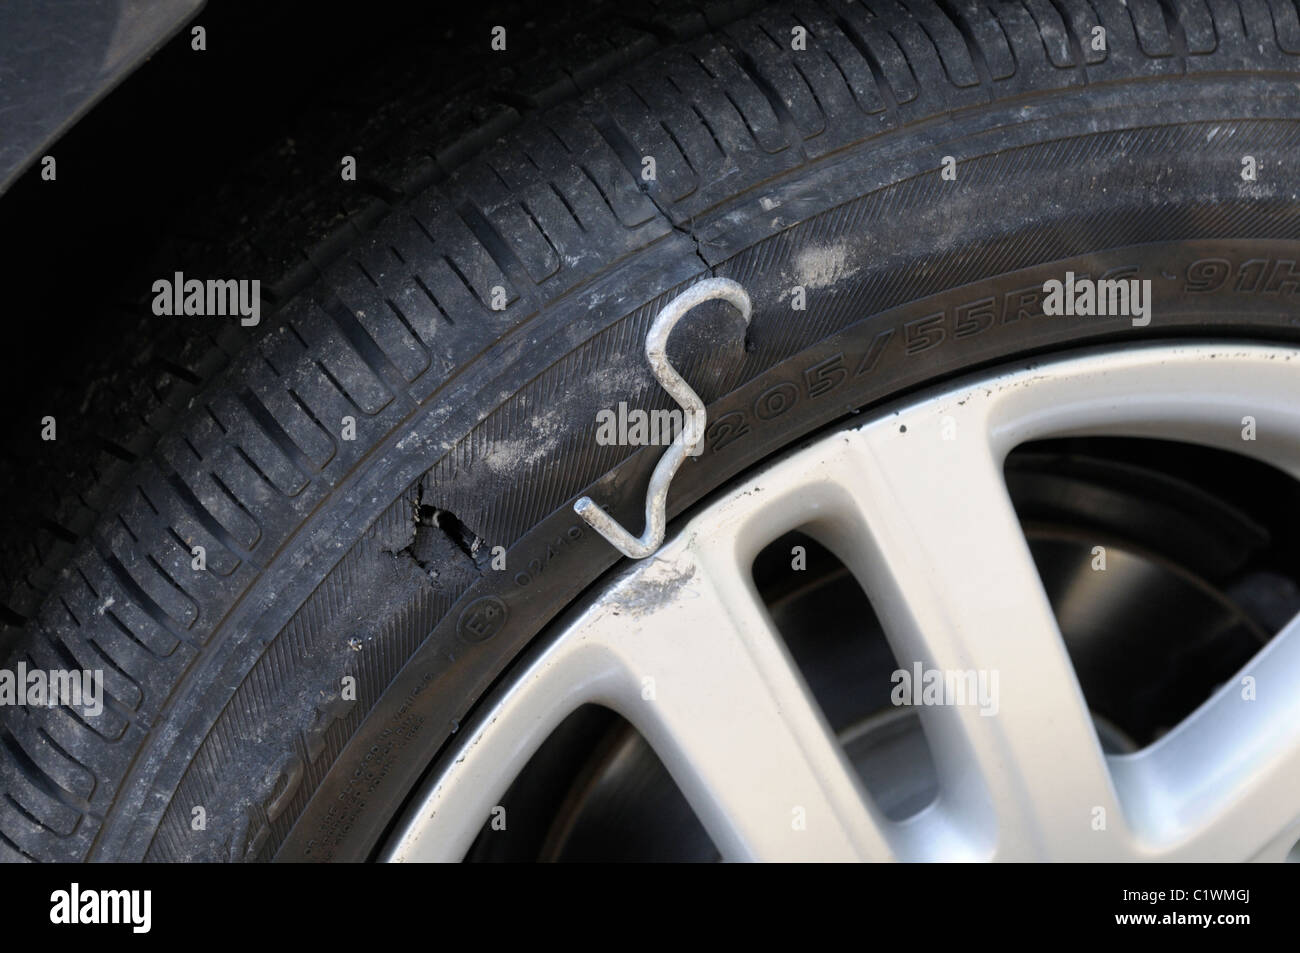 Flat, punctured tire - Stock Image